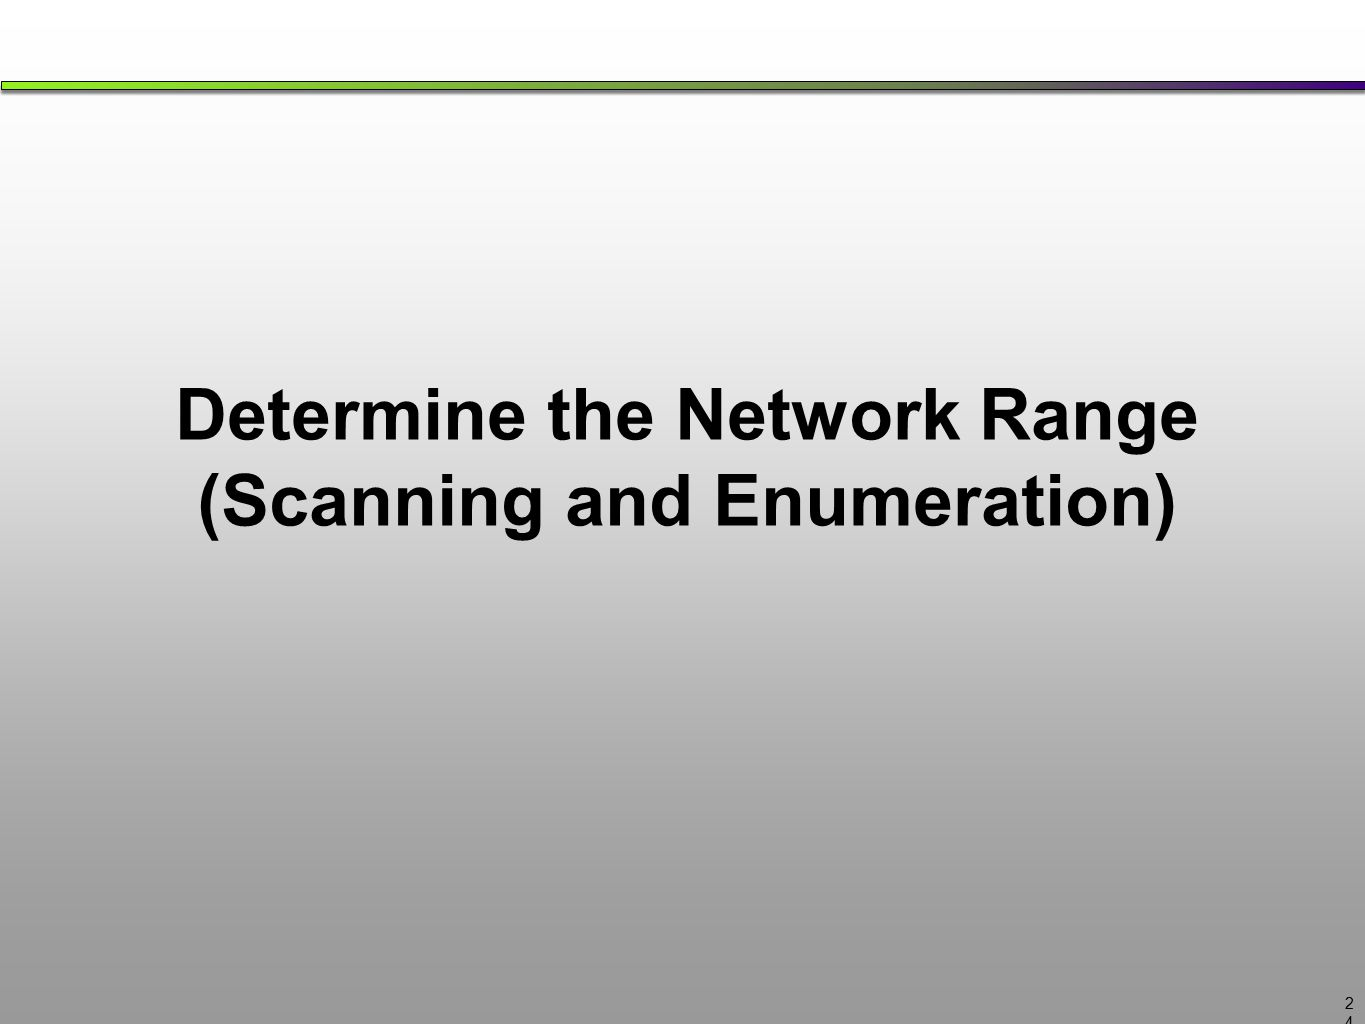 Determine the Network Range (Scanning and Enumeration) 2424